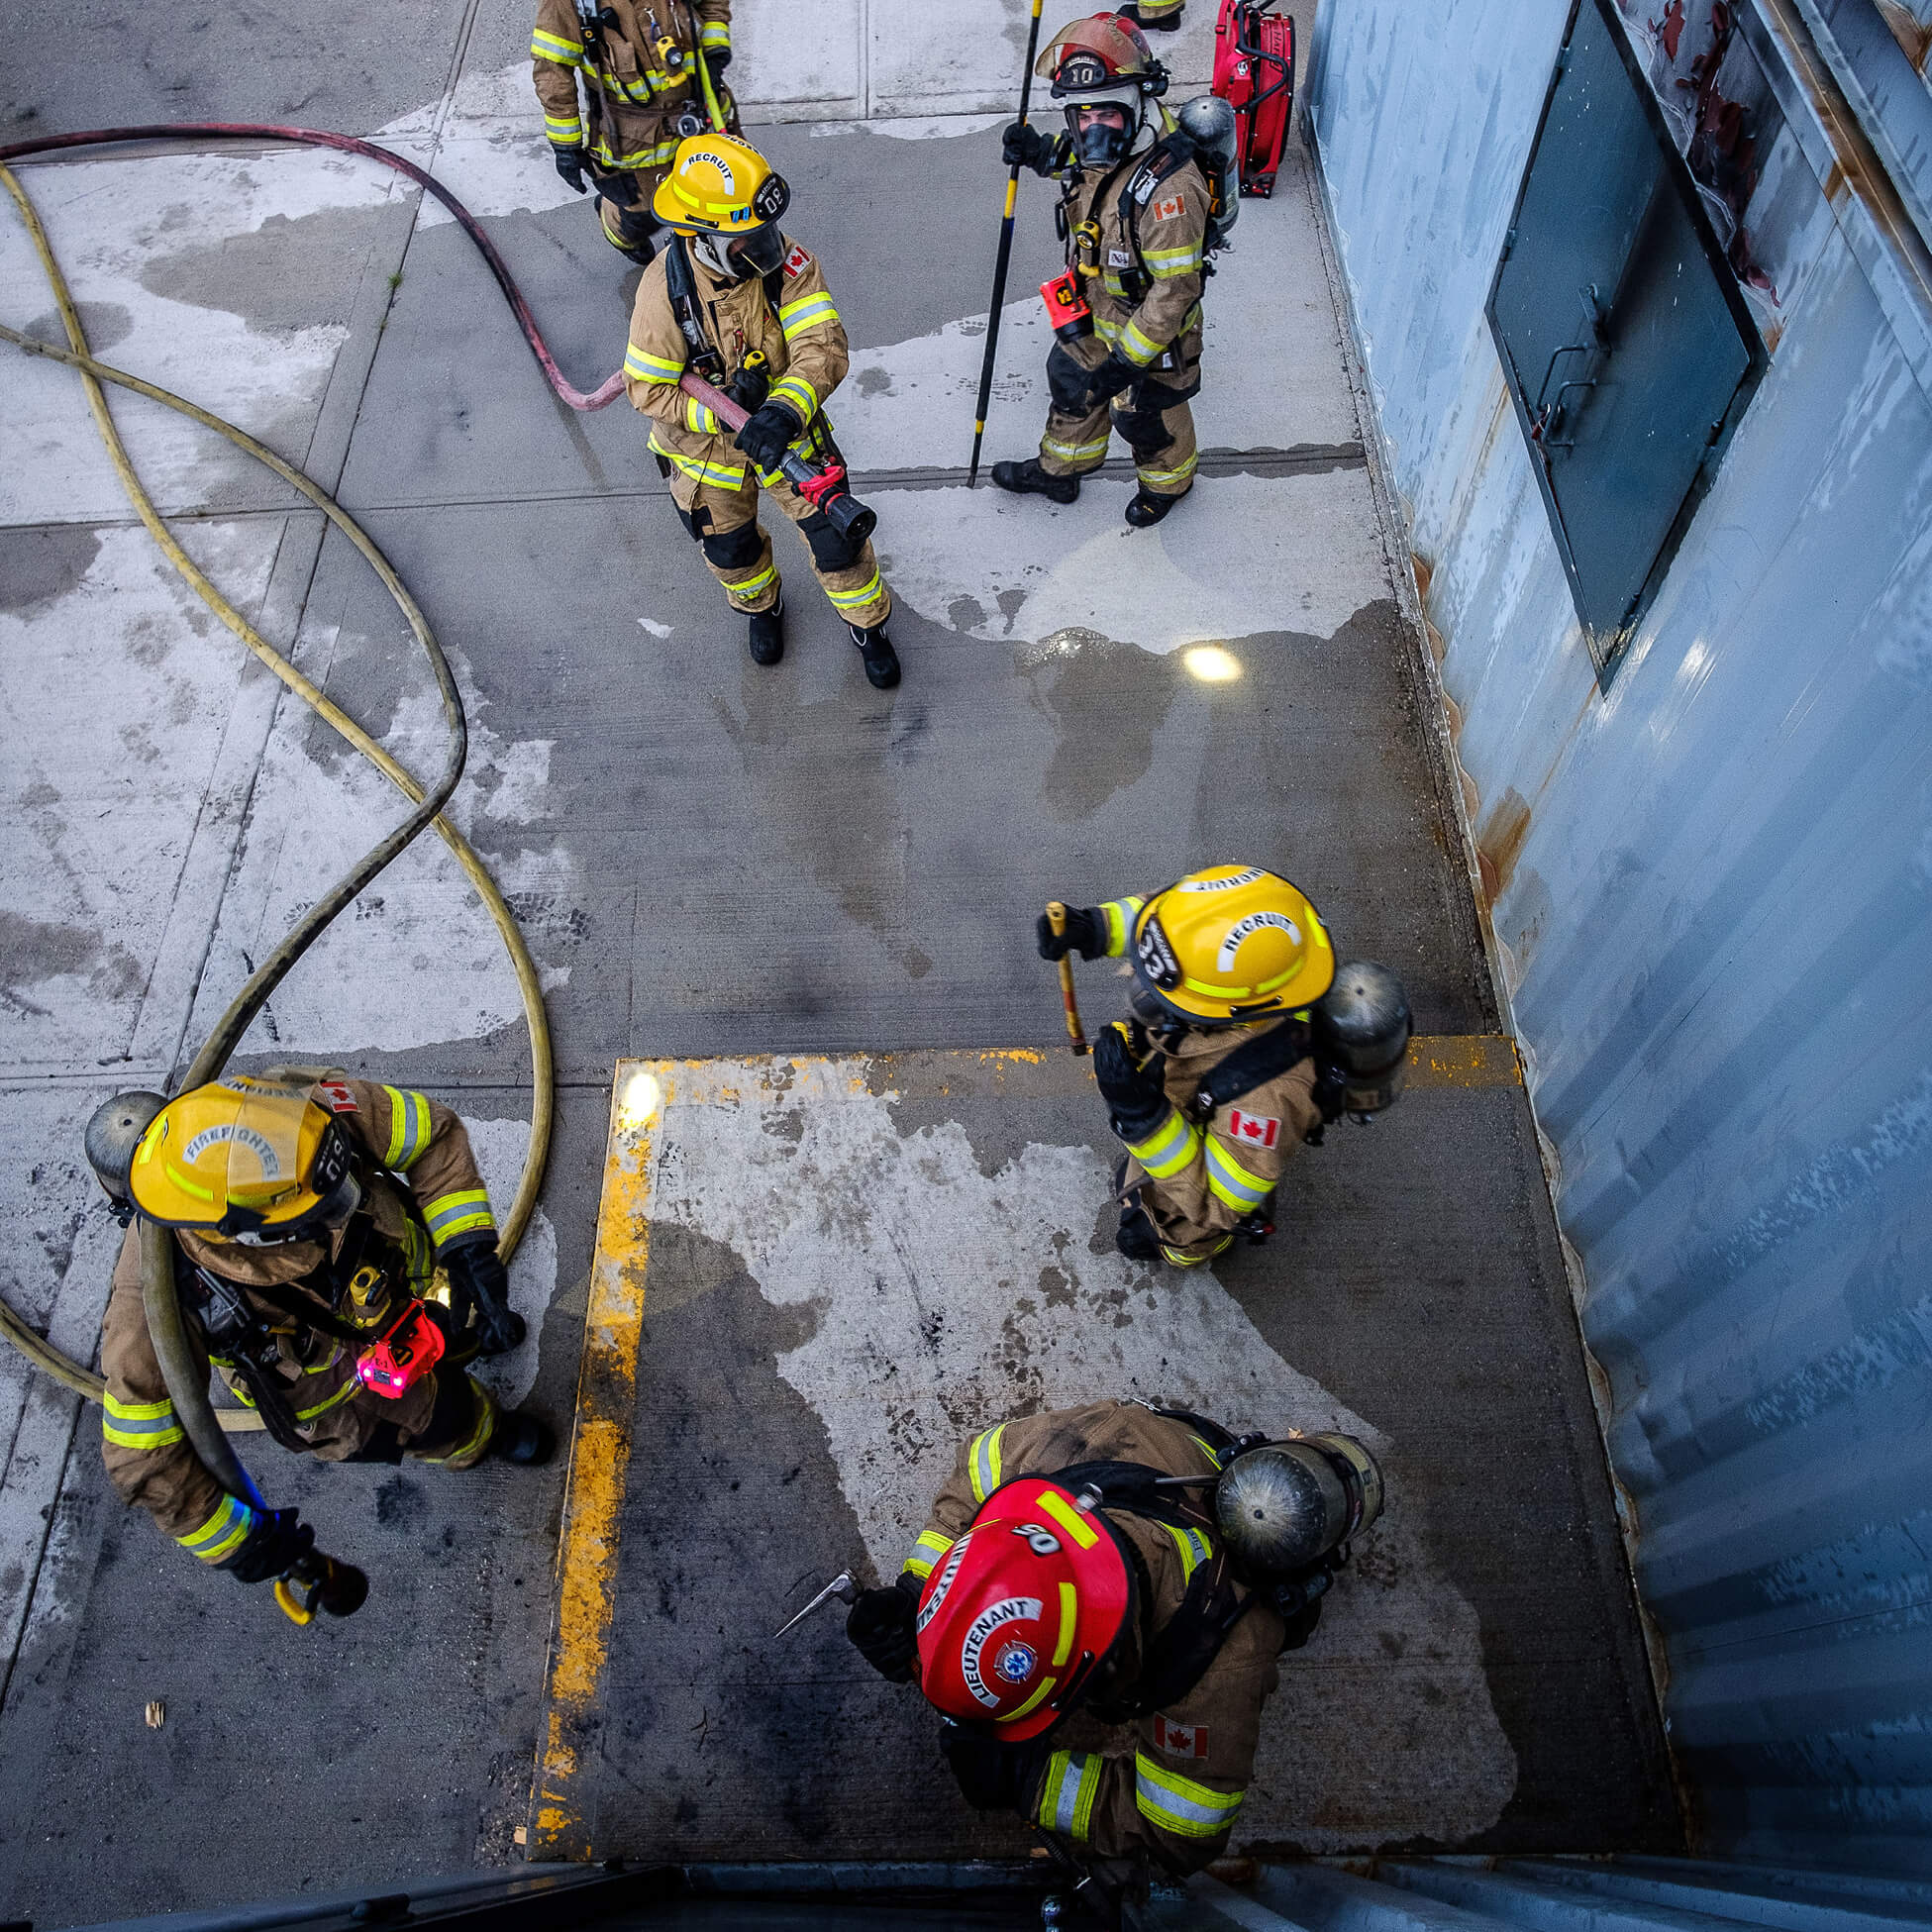 A group of our firefighters during a training exercise